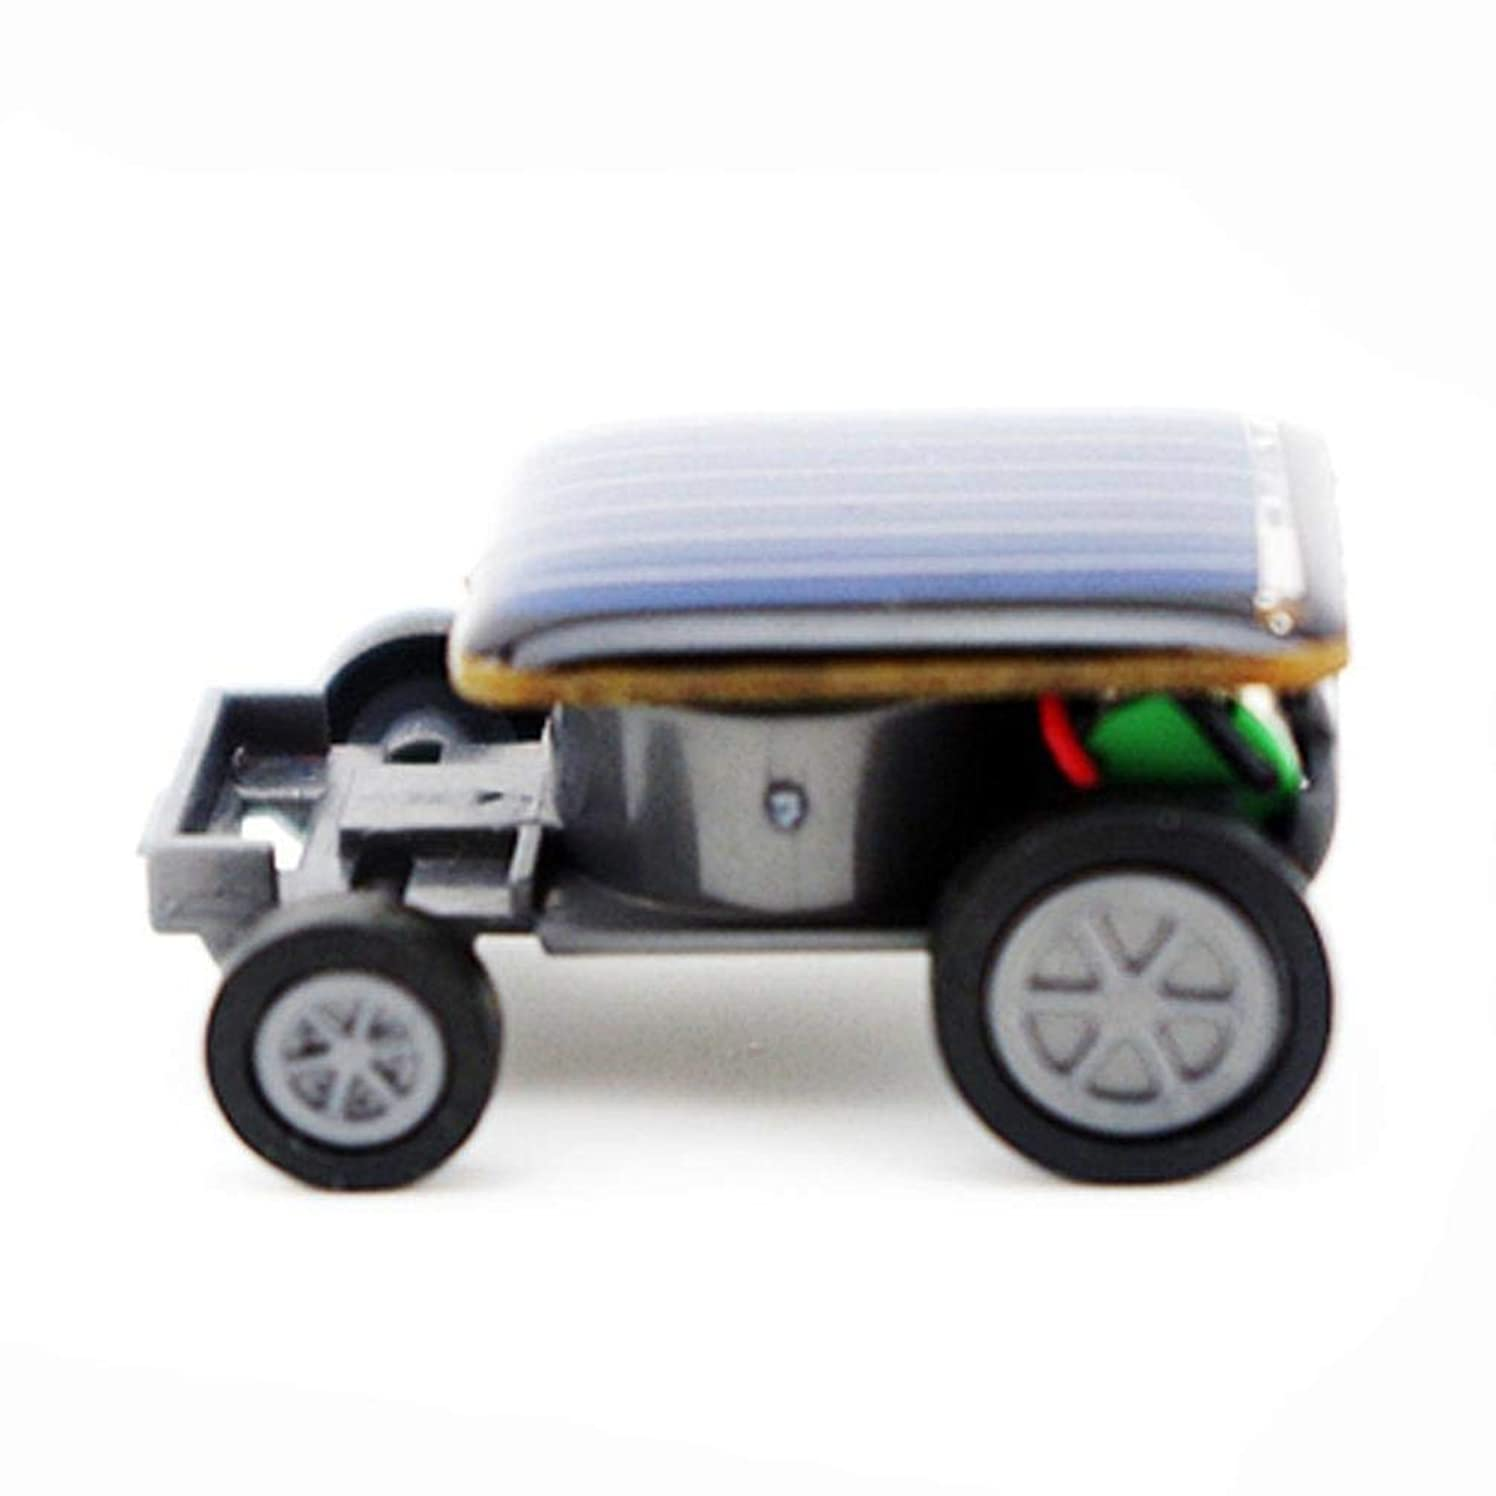 Cinhent Toys, 33 x 22 x 14MM Educational Smallest Solar Power Mini Toy Car Racer Solar Powered Toy, Creative Activity Gifts - Science Experiment Car Kids, Teens Adults